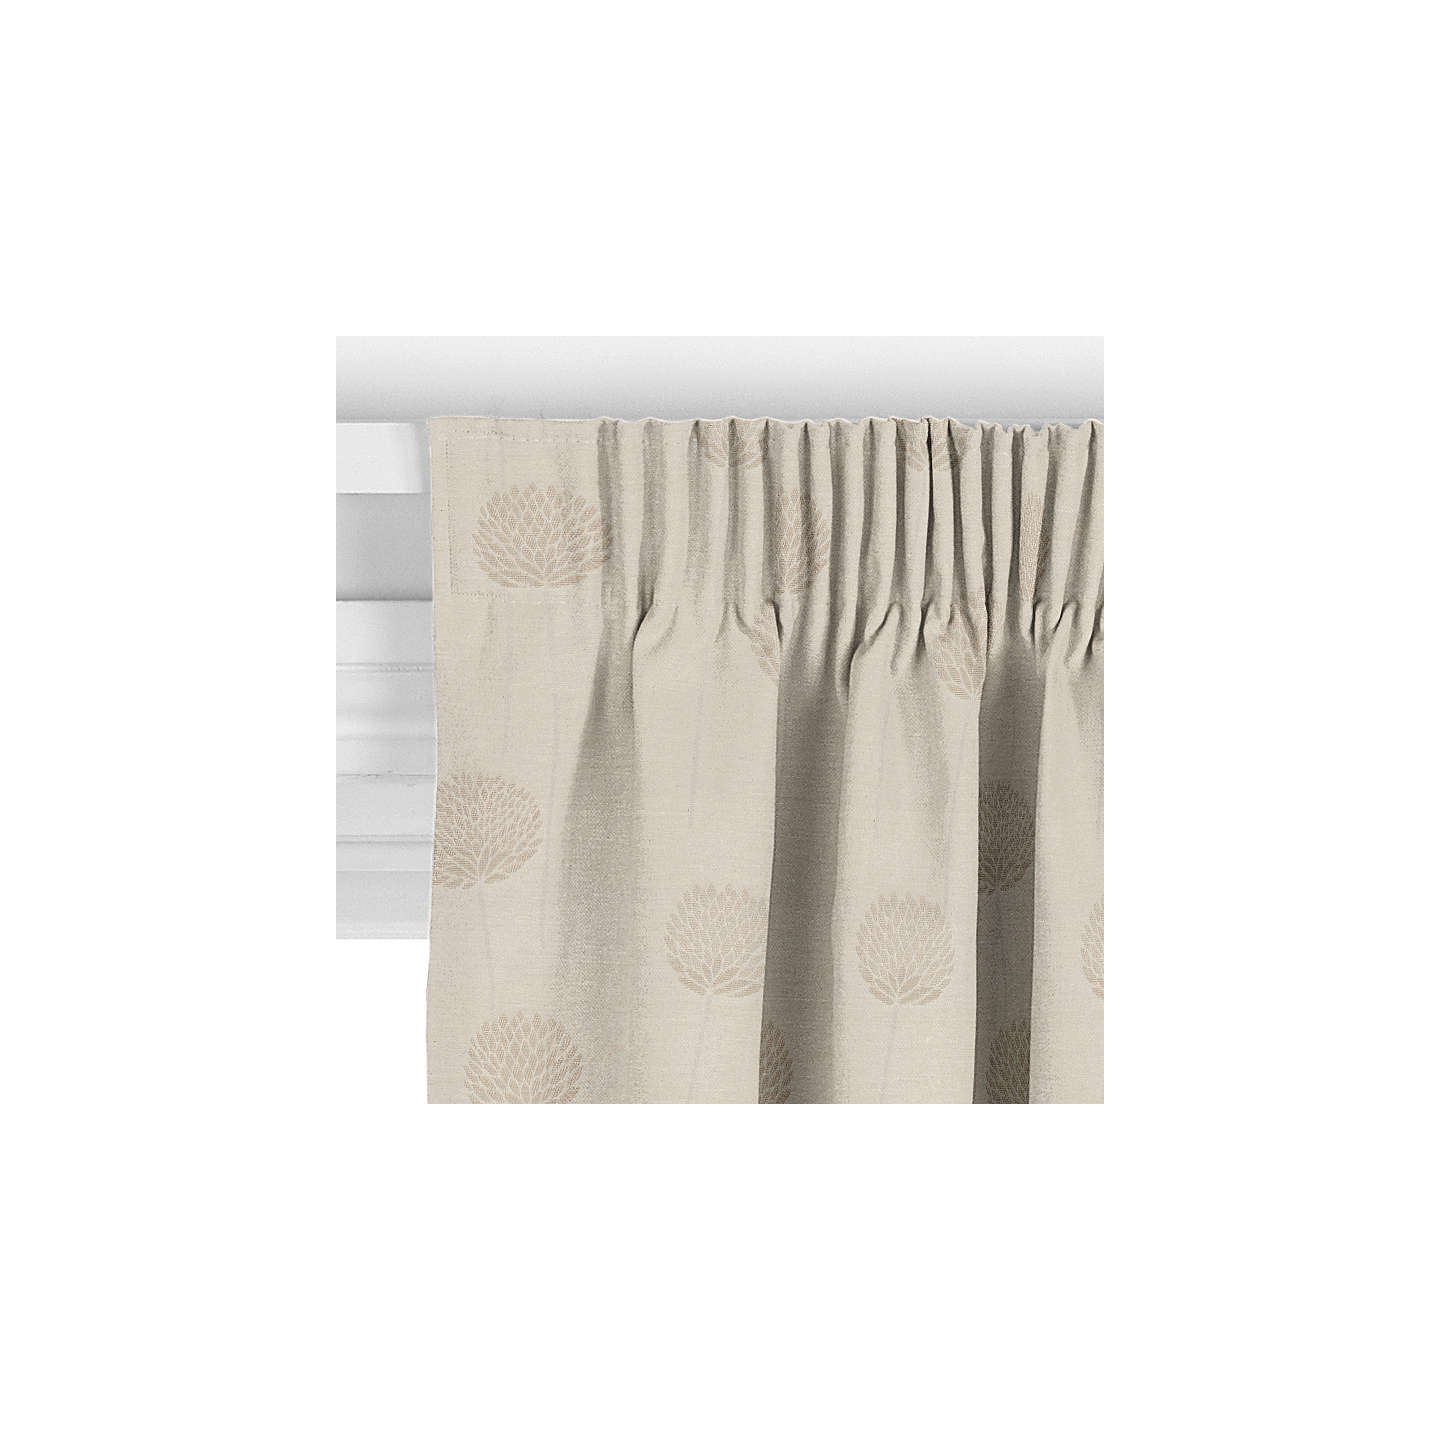 BuyJohn Lewis Nadia Curtain, Linen Online at johnlewis.com